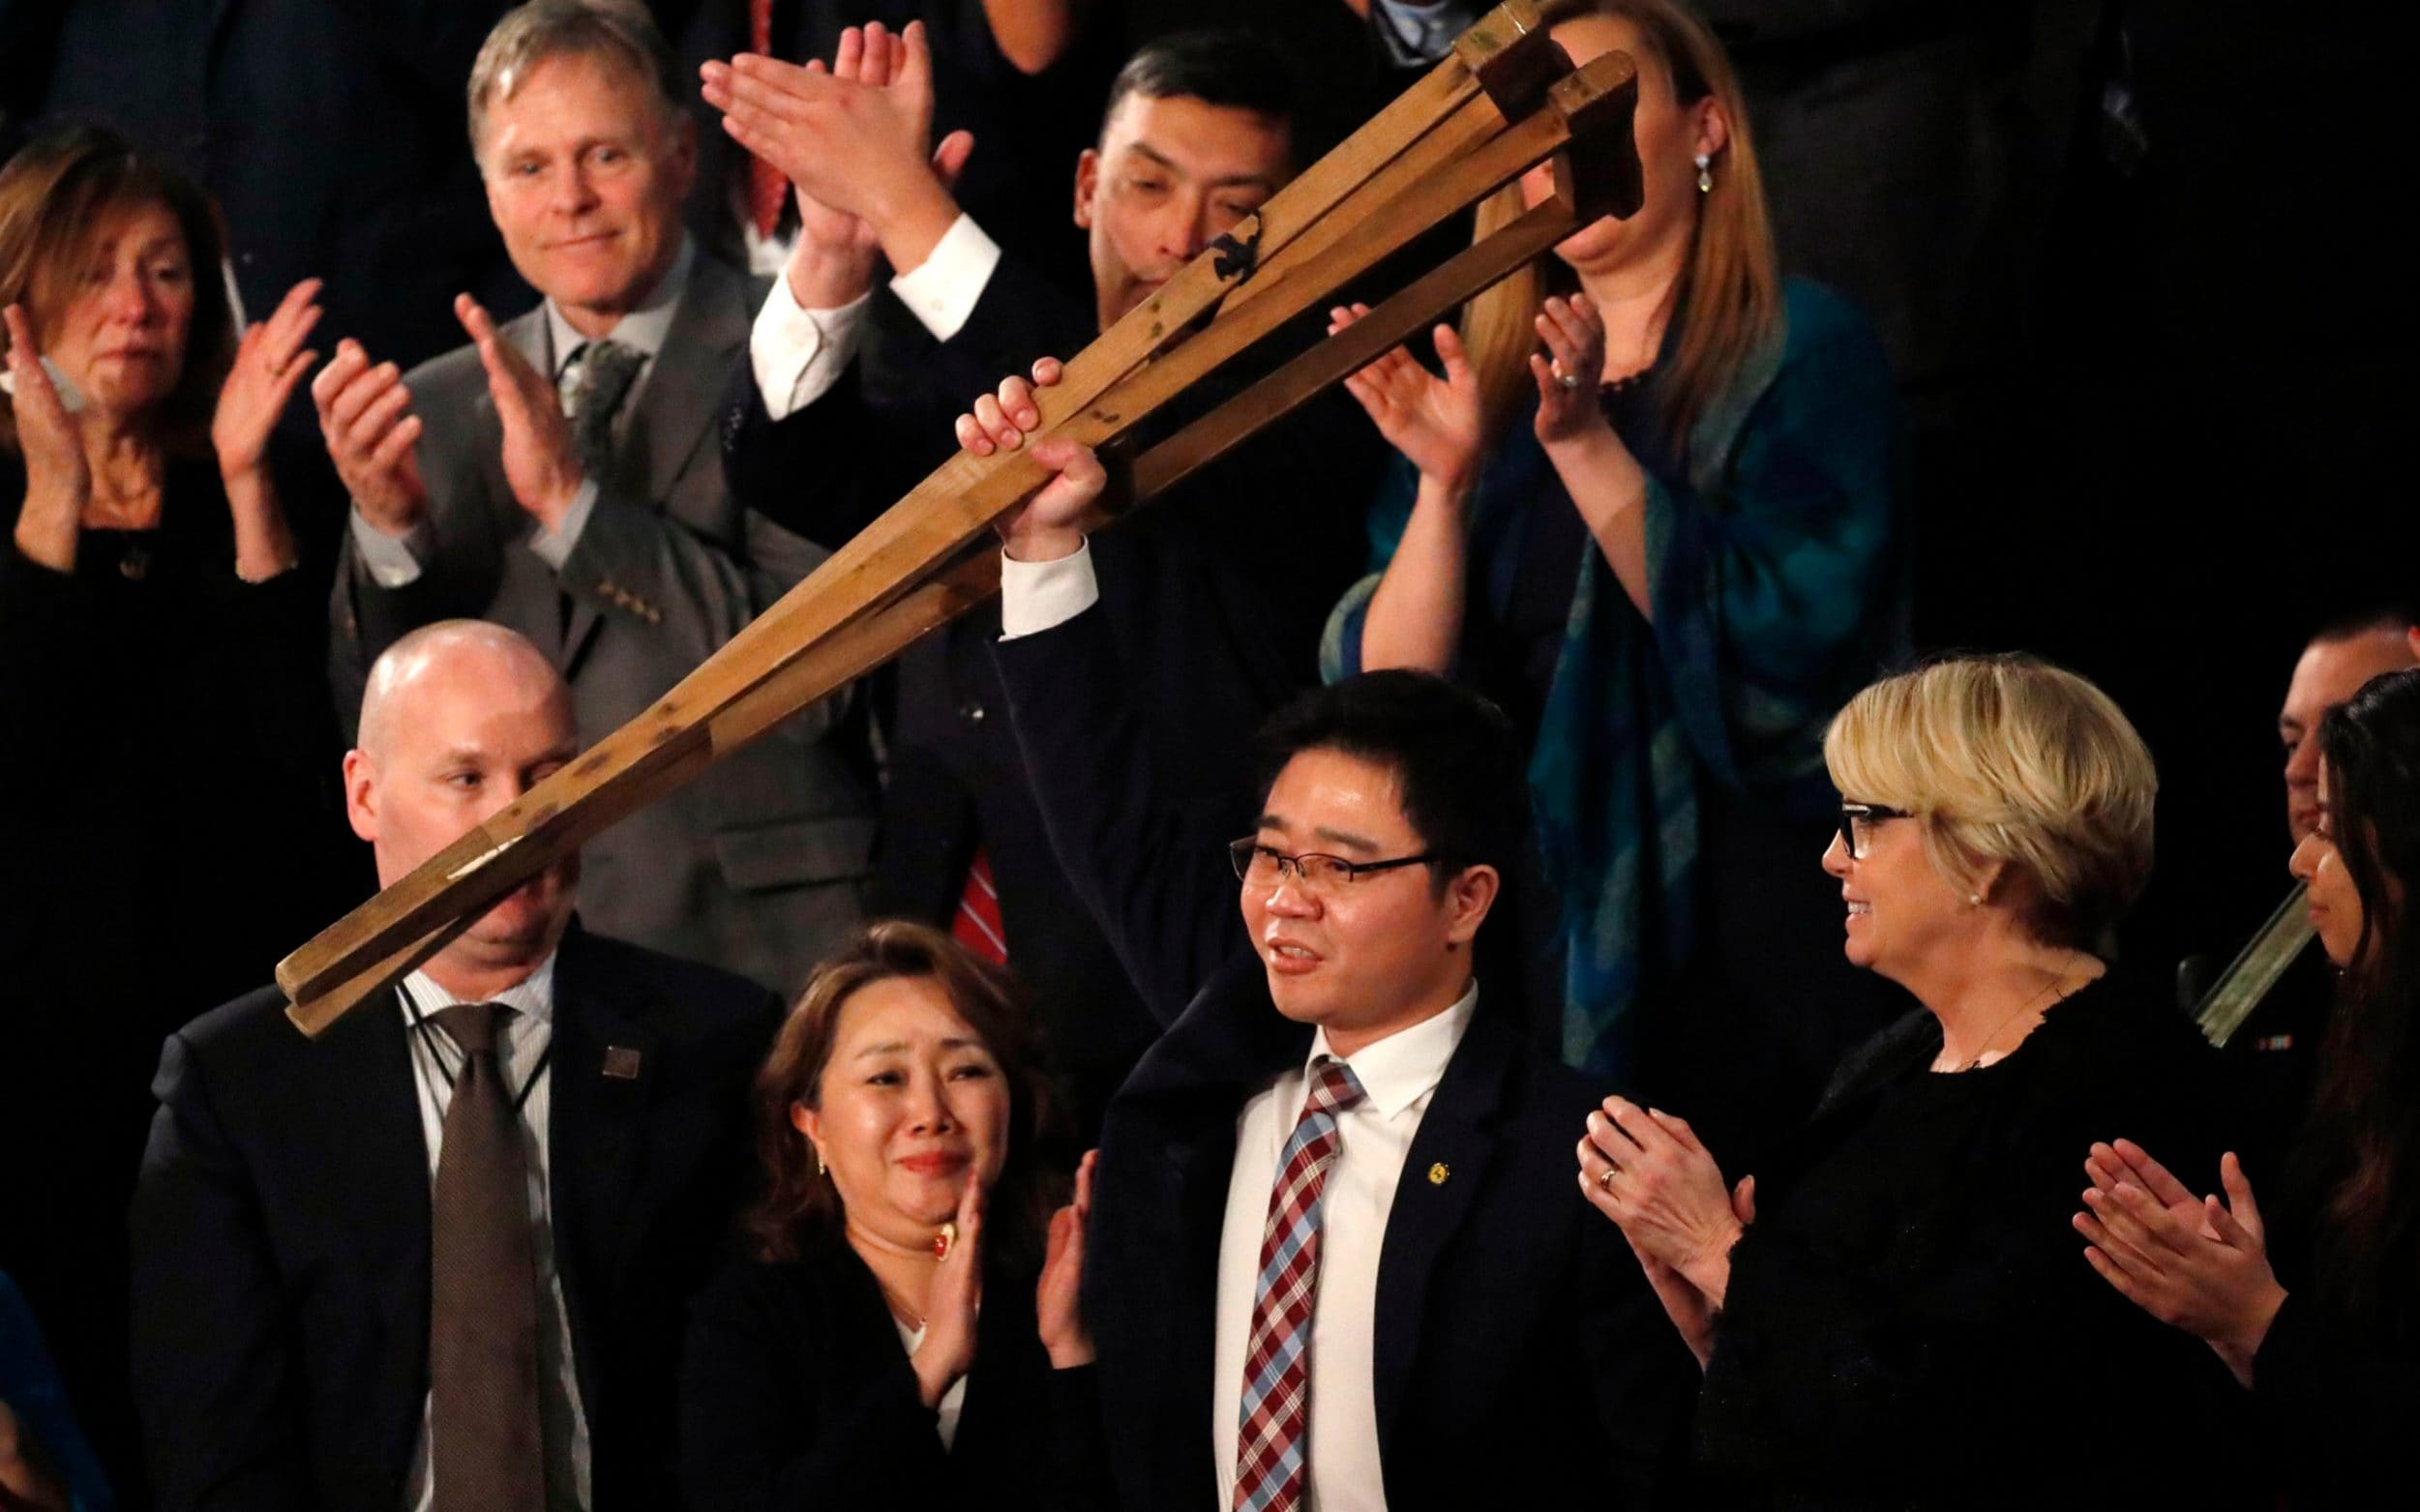 North Korean defector Ji Seong-ho is acknowledged by U.S. President Trump as he delivers his State of the Union address in Washington